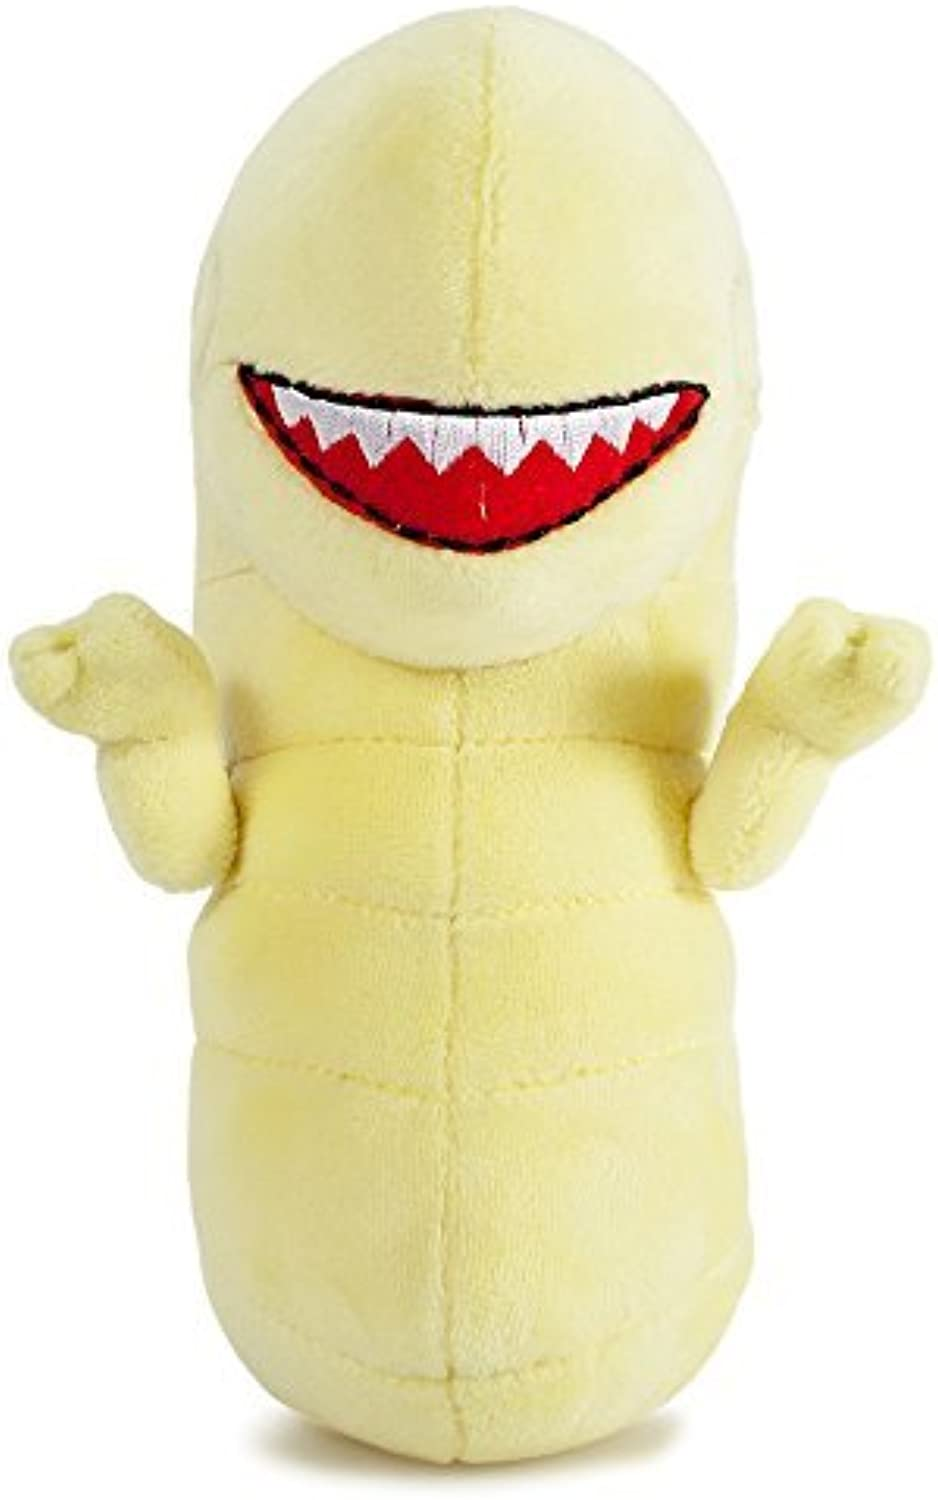 Alien Chestburster Plush Toy by Kidrobot